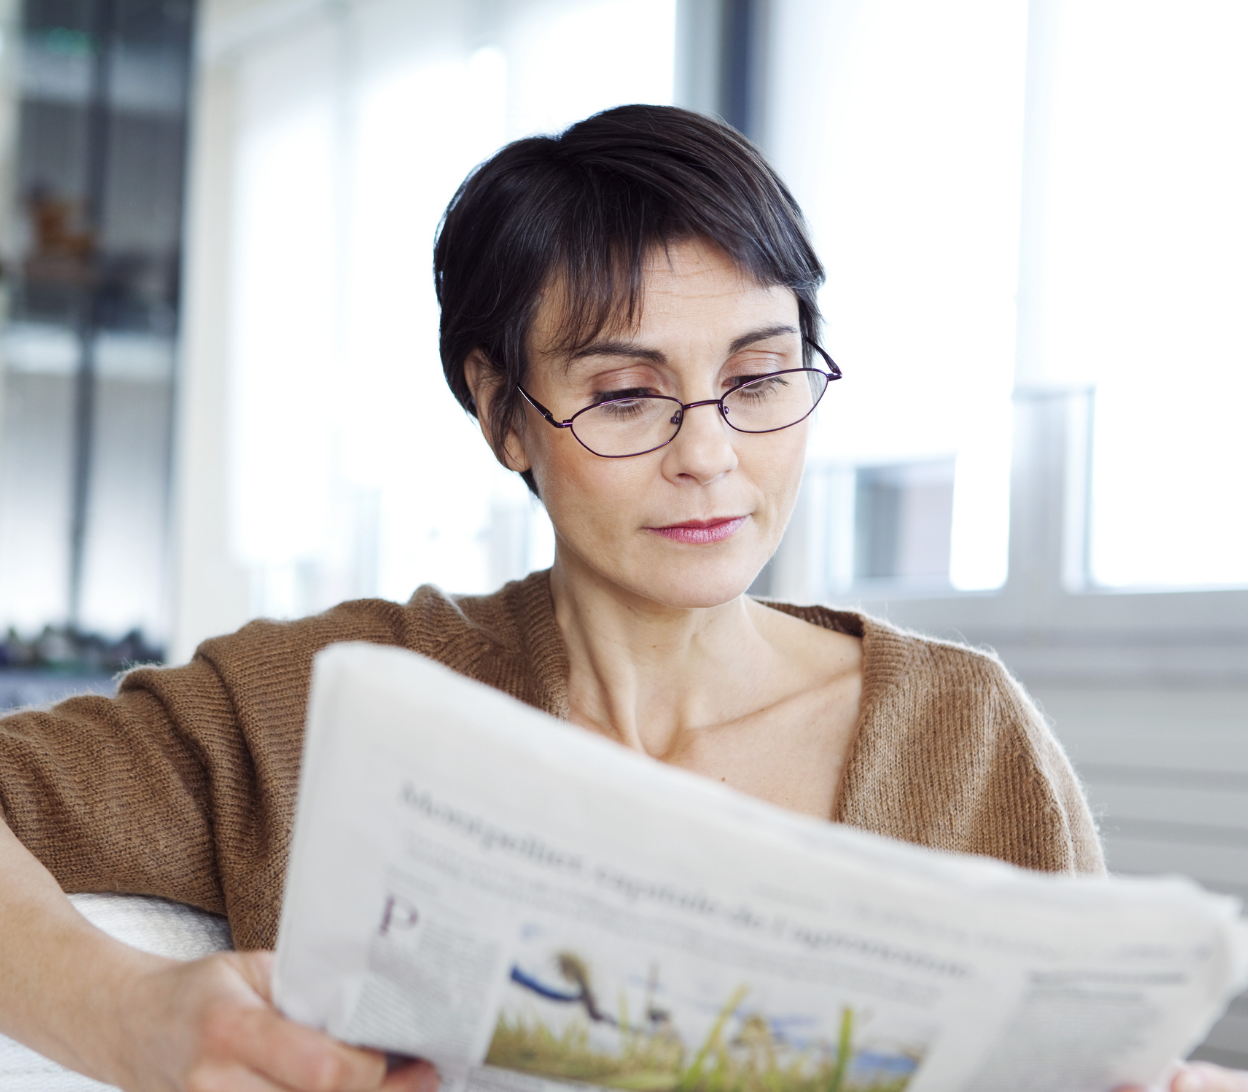 woman reading with her glasses on